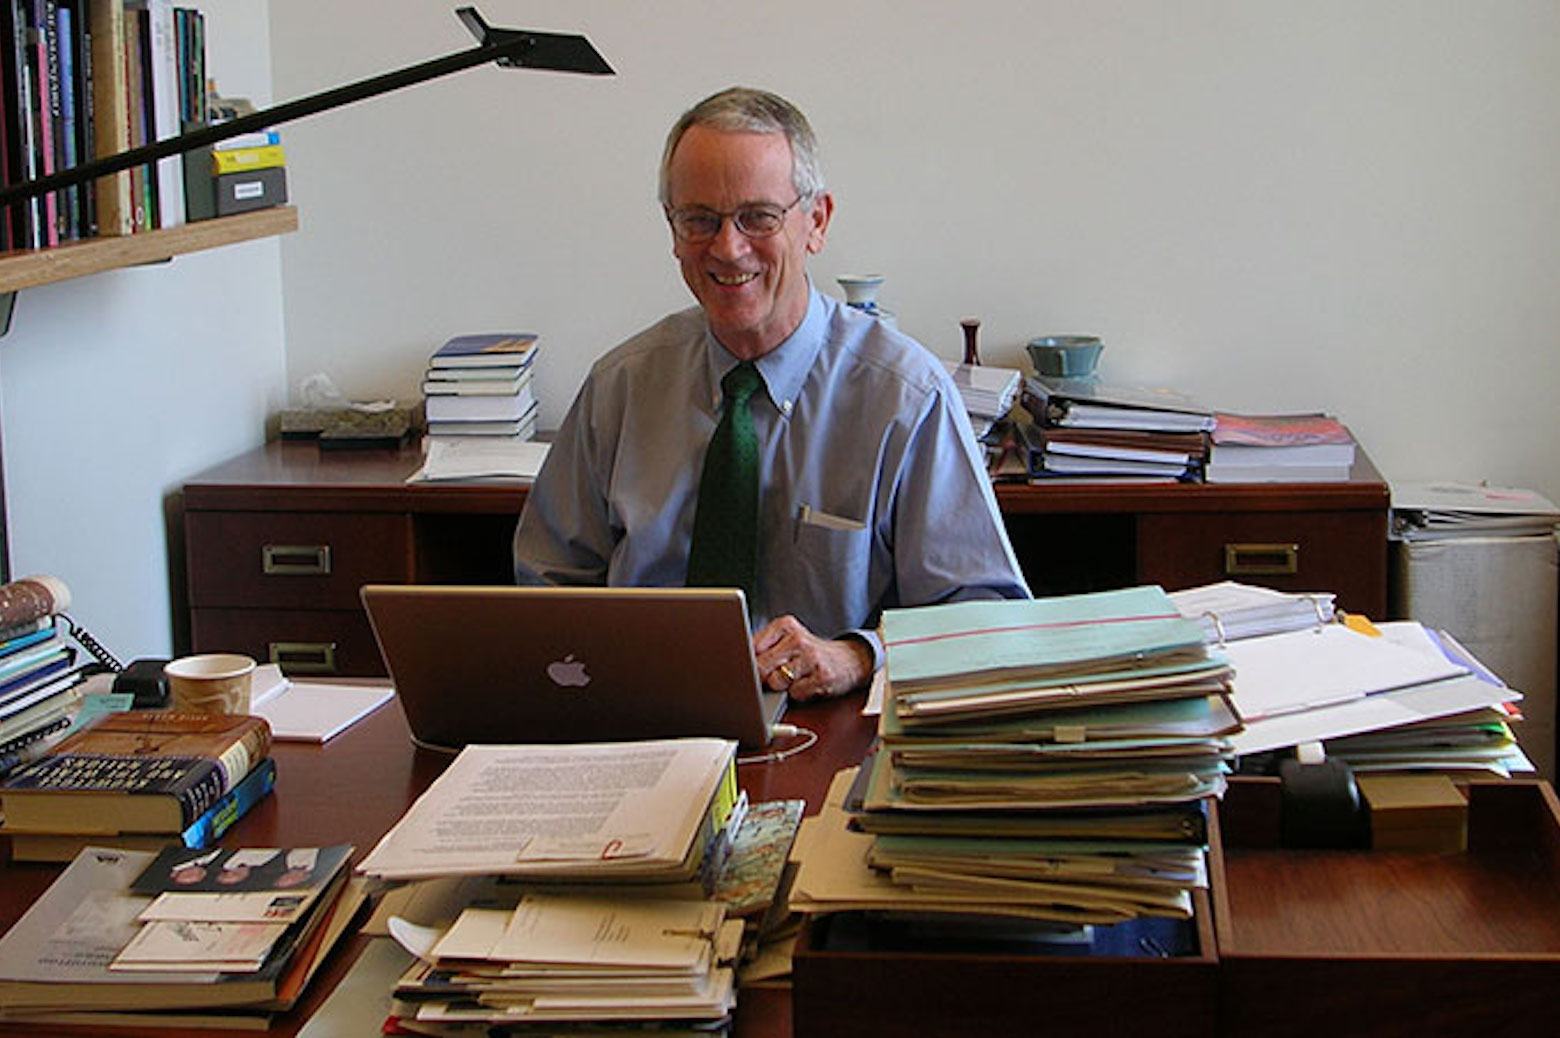 Chuck Vest in his office.